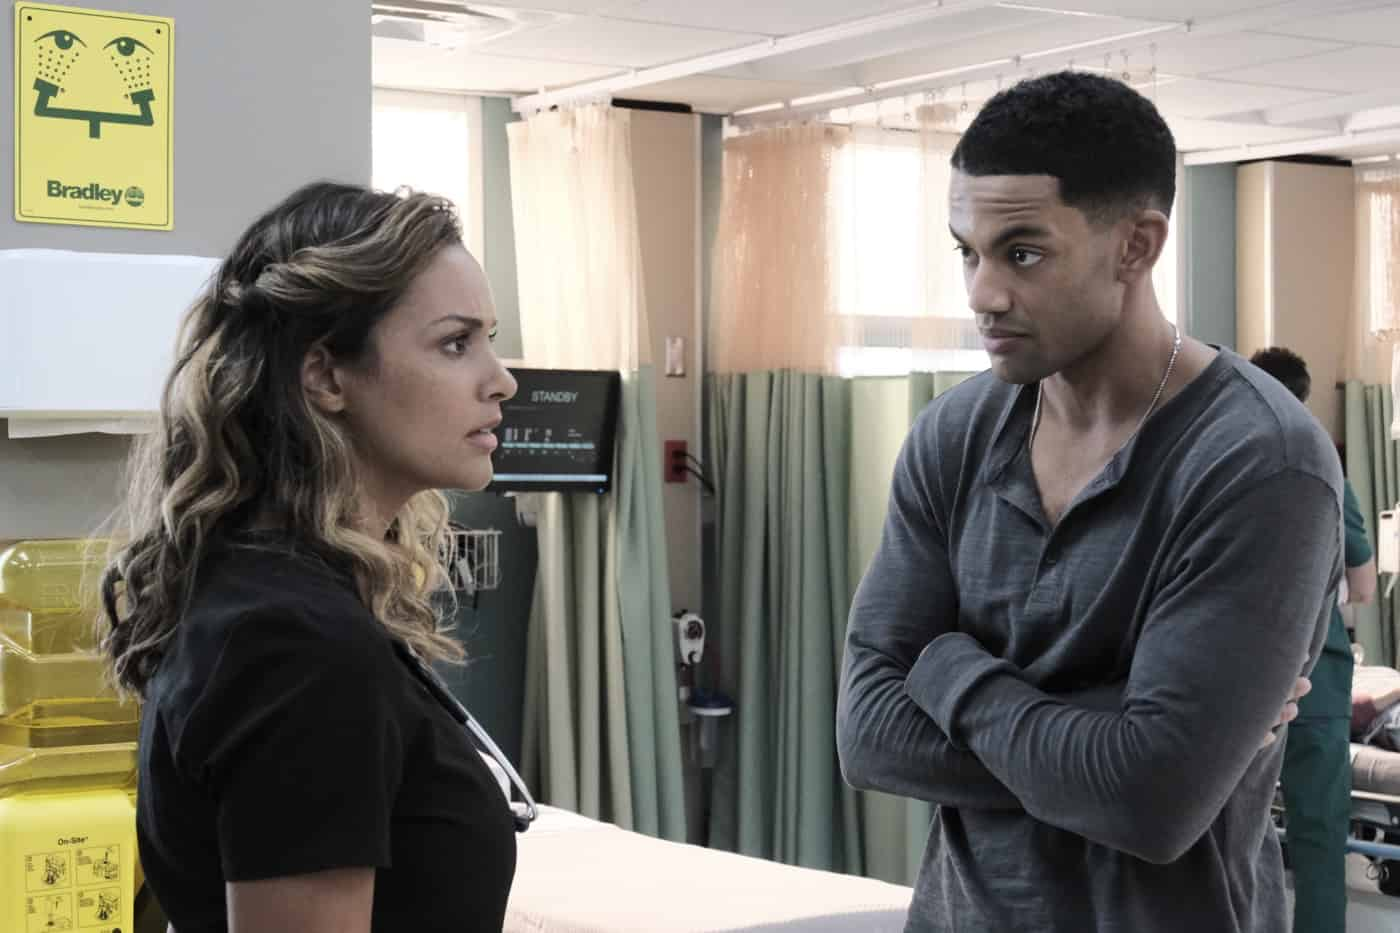 """THE RESIDENT Season 5 Episode 2: L-R:  Jessica Lucas and Miles Fowler in the """"No Good Deed"""" season premiere episode of THE RESIDENT airing Tuesday, Sept. 28 (8:00-9:00 PM ET/PT) on FOX. ©2021 Fox Media LLC Cr: Guy D'Alema/FOX"""